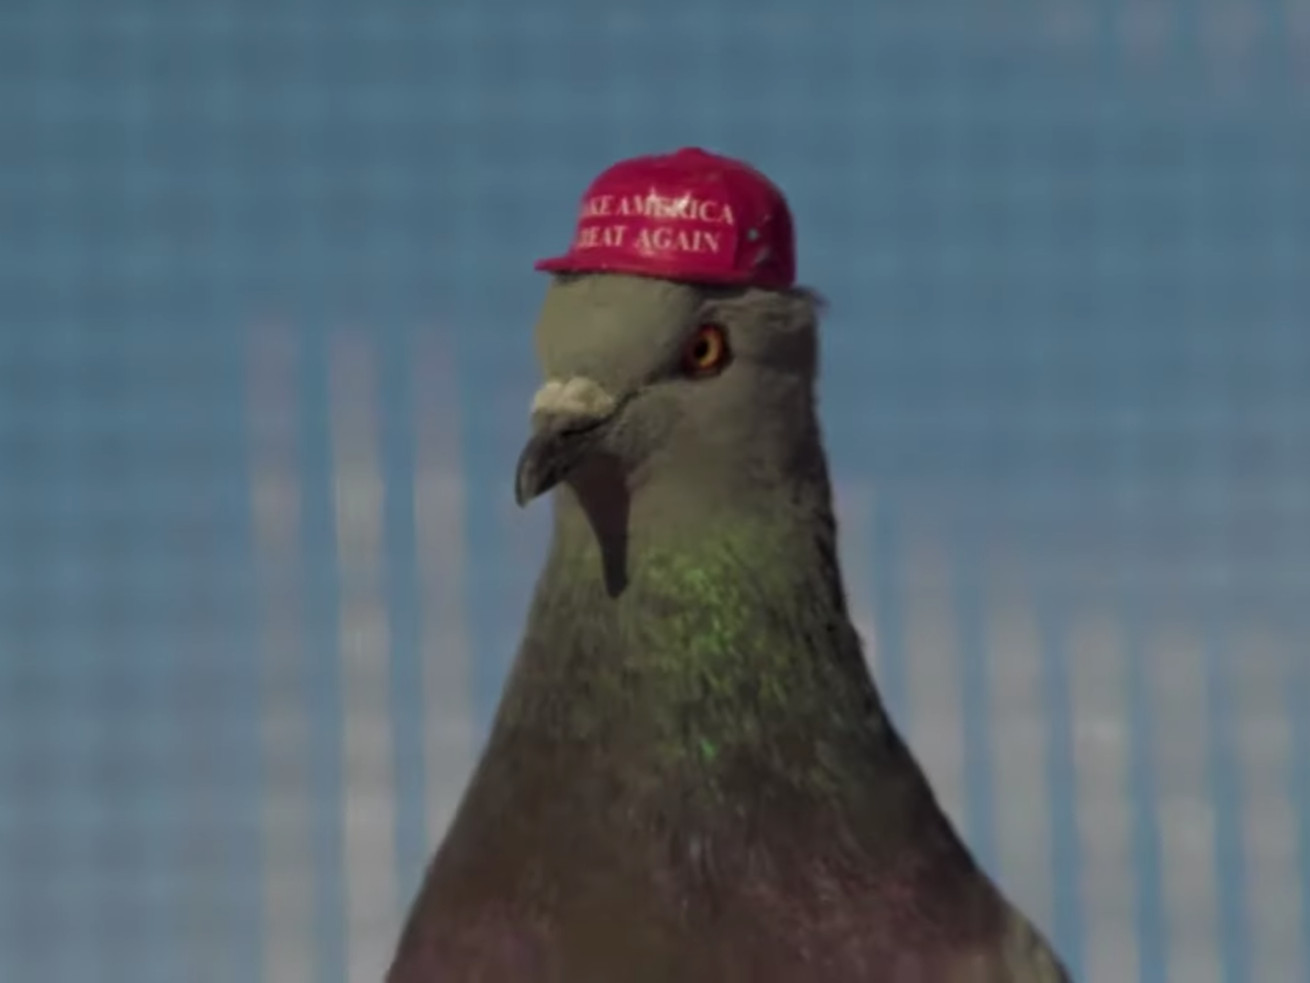 Make America Beak Again: A rogue political group is putting tiny MAGA hats on pigeons